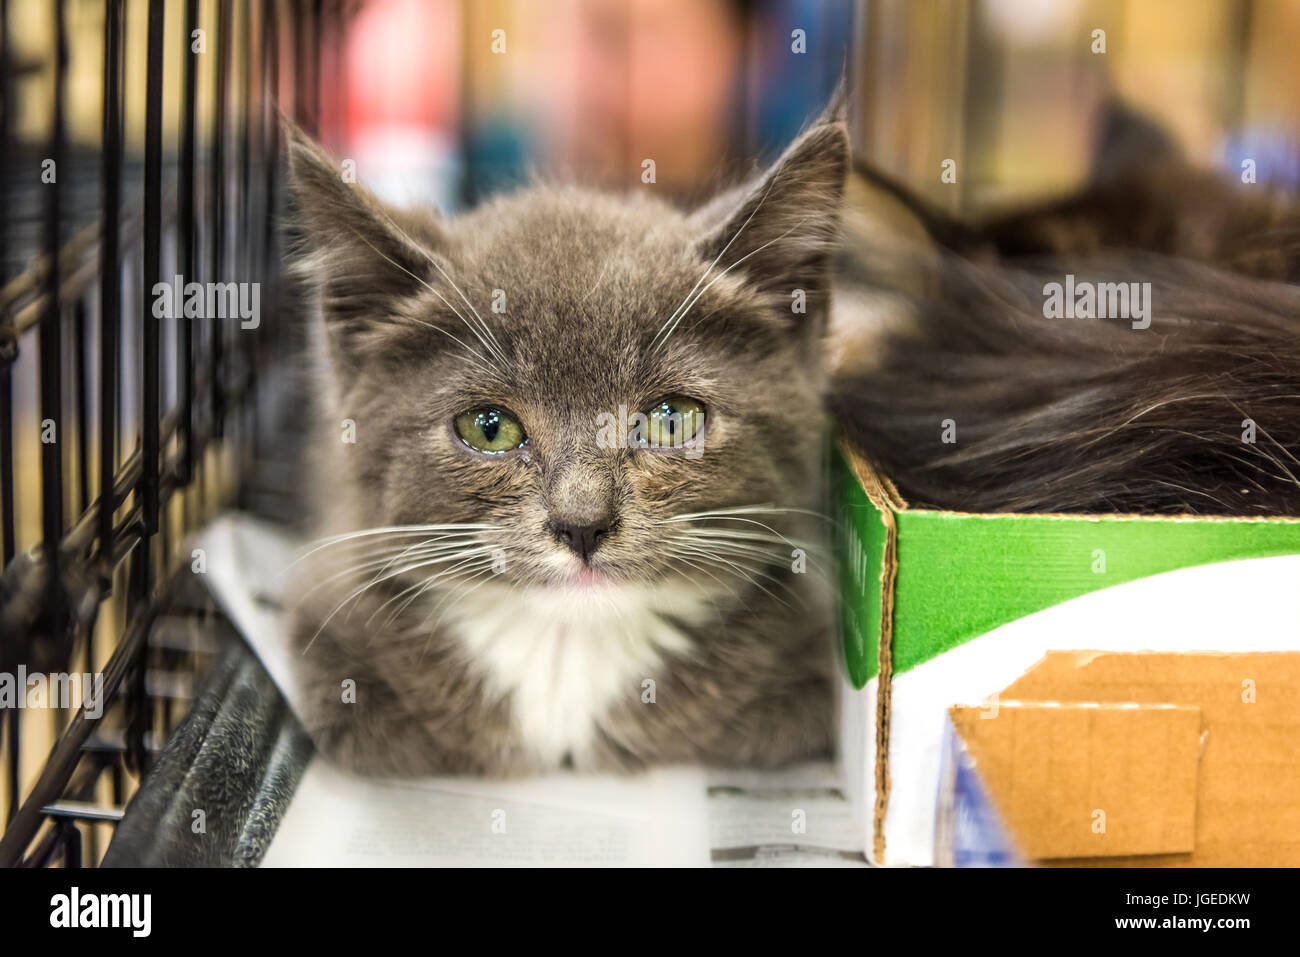 Closeup of adorable tiny russian blue grey and white kitten with